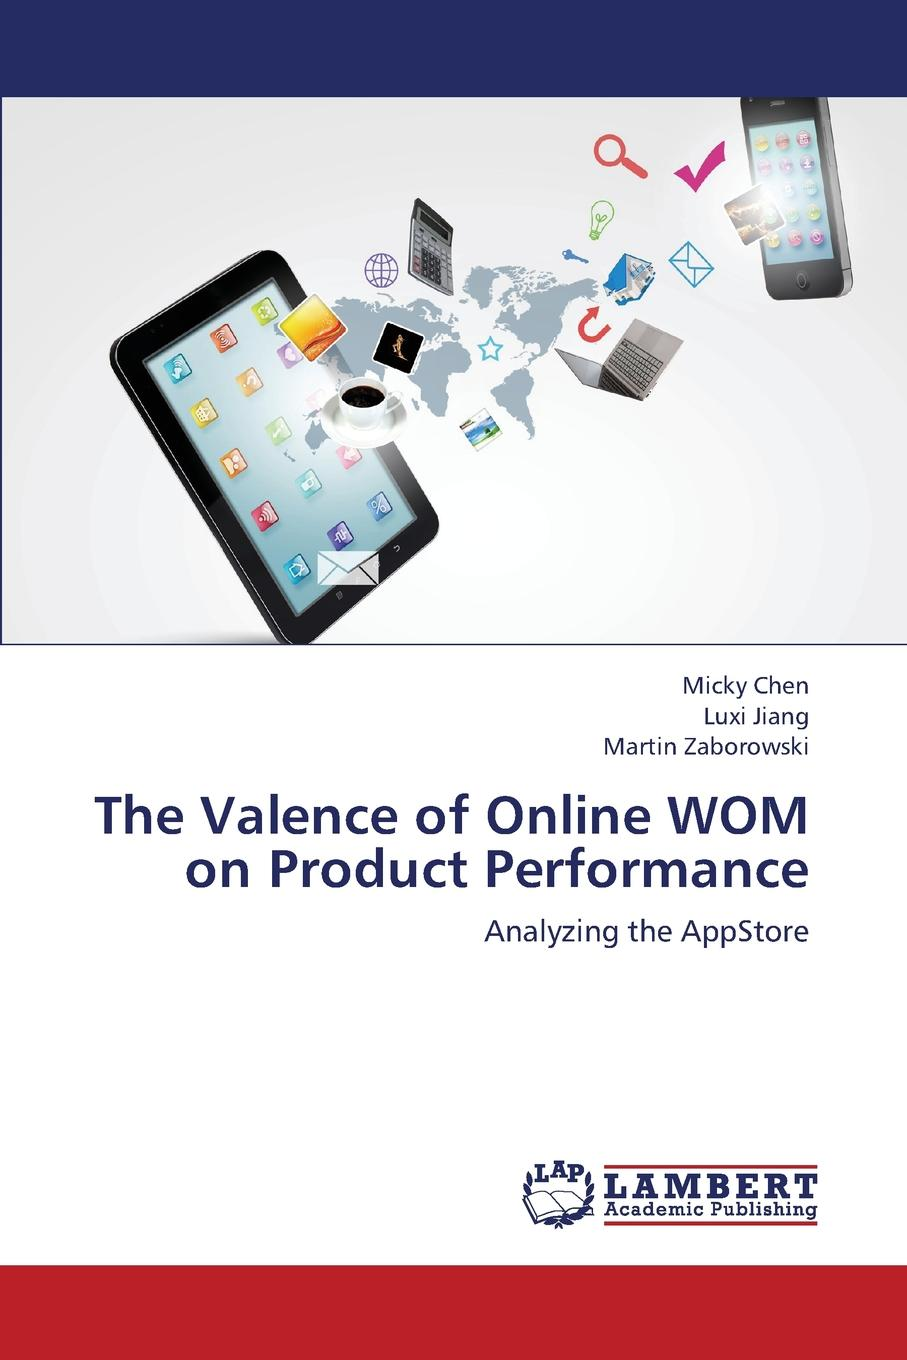 Chen Micky, Jiang Luxi, Zaborowski Martin The Valence of Online Wom on Product Performance e hart wayne feedback in performance reviews